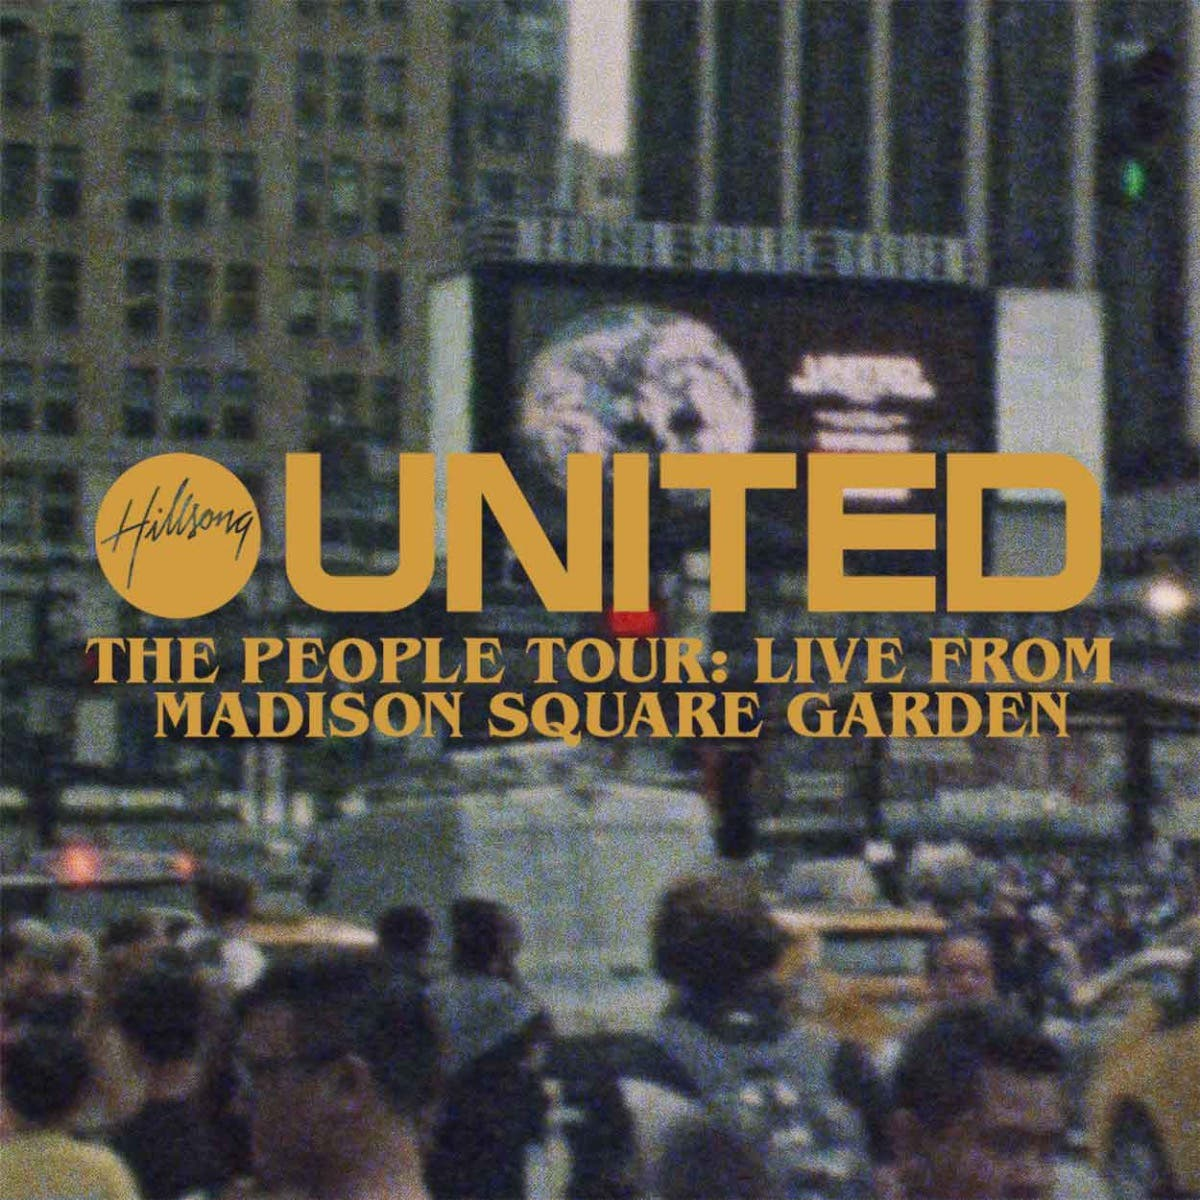 The People Tour: Live from Madison Square Garden